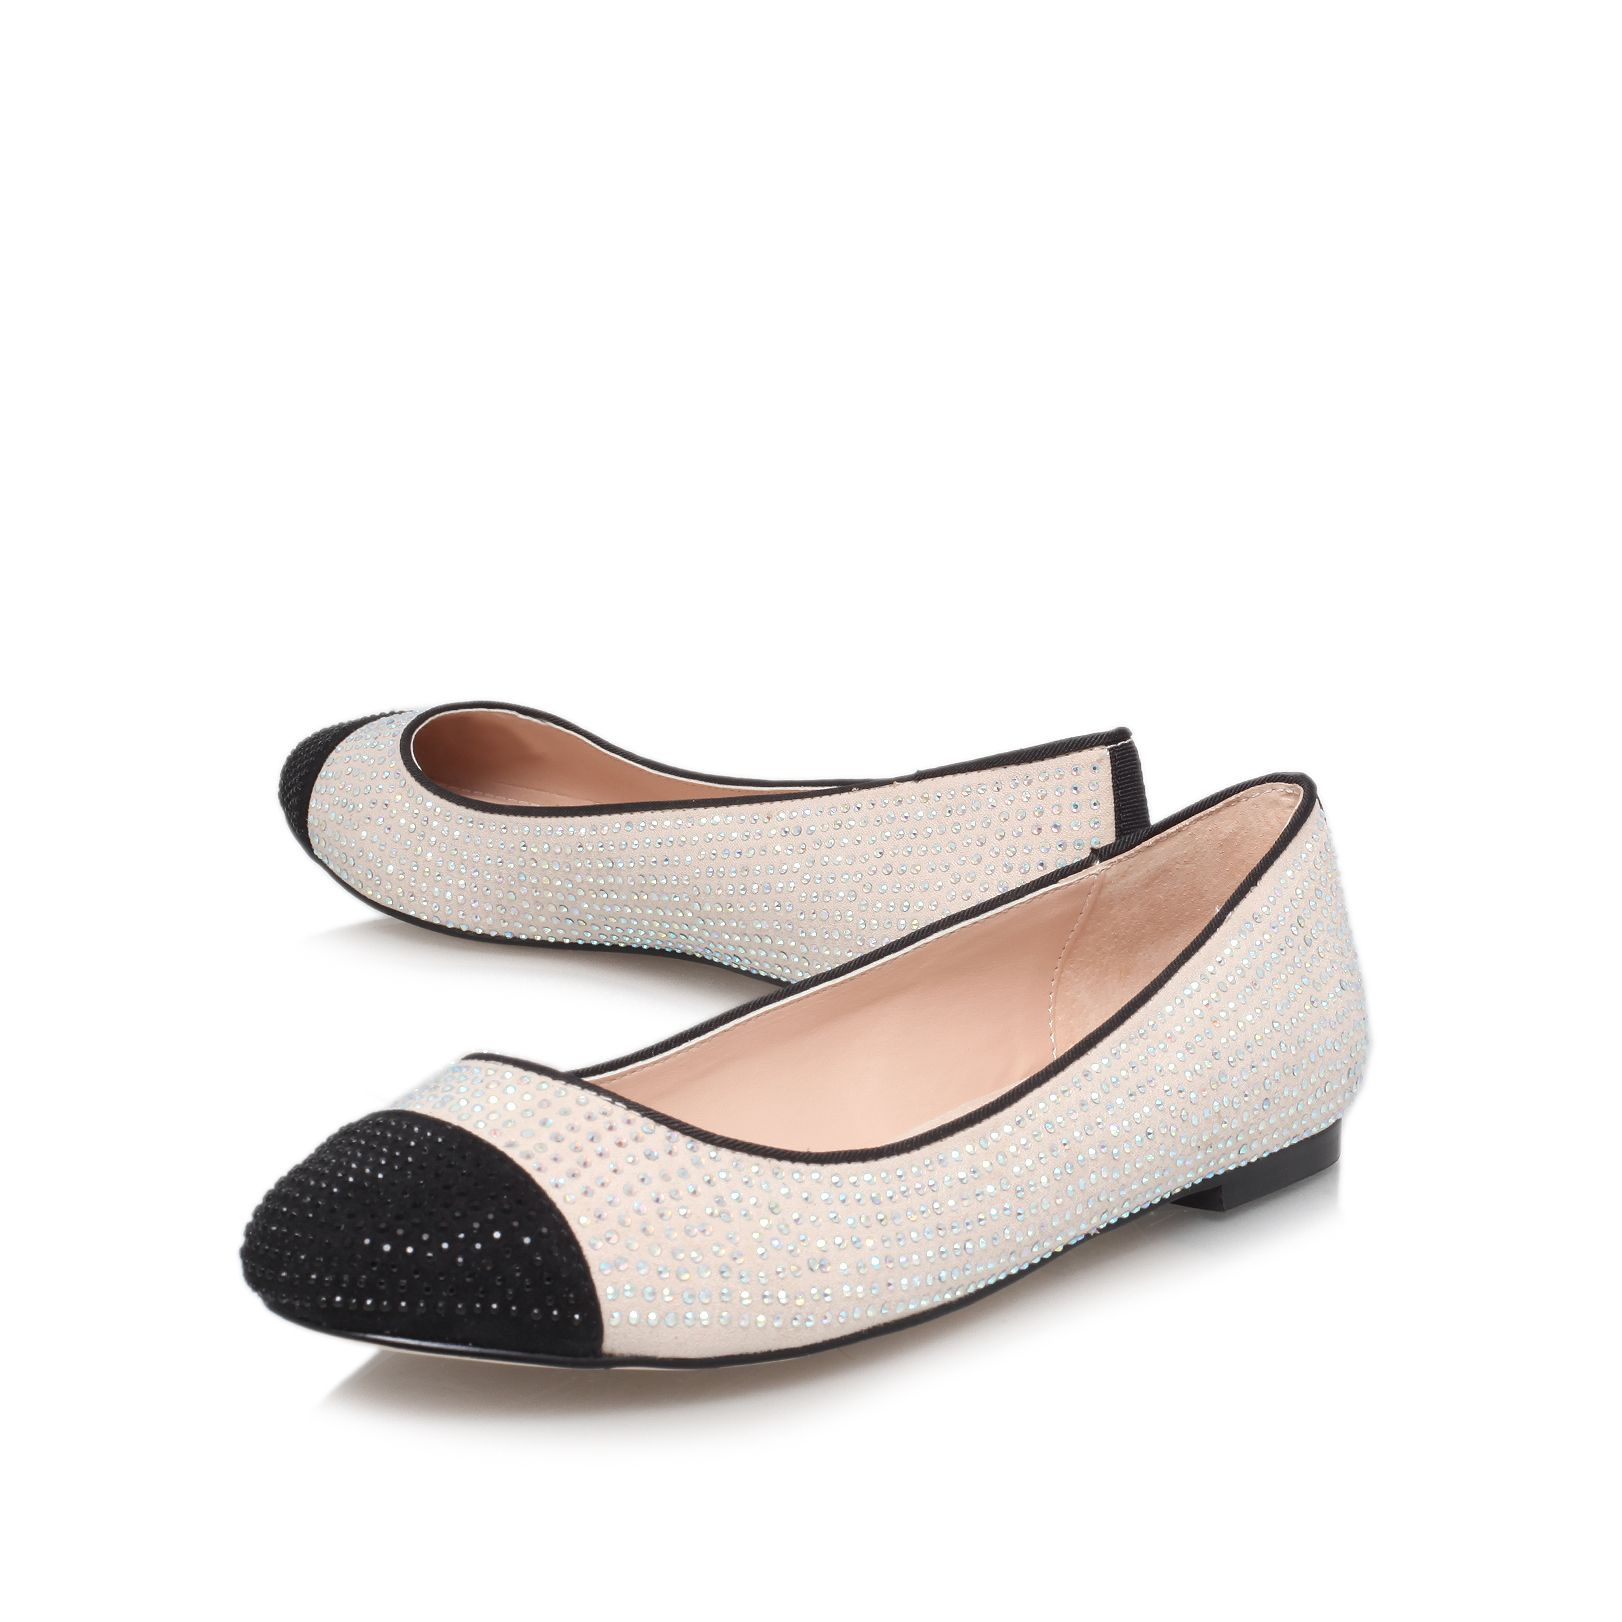 Lily flat court shoes